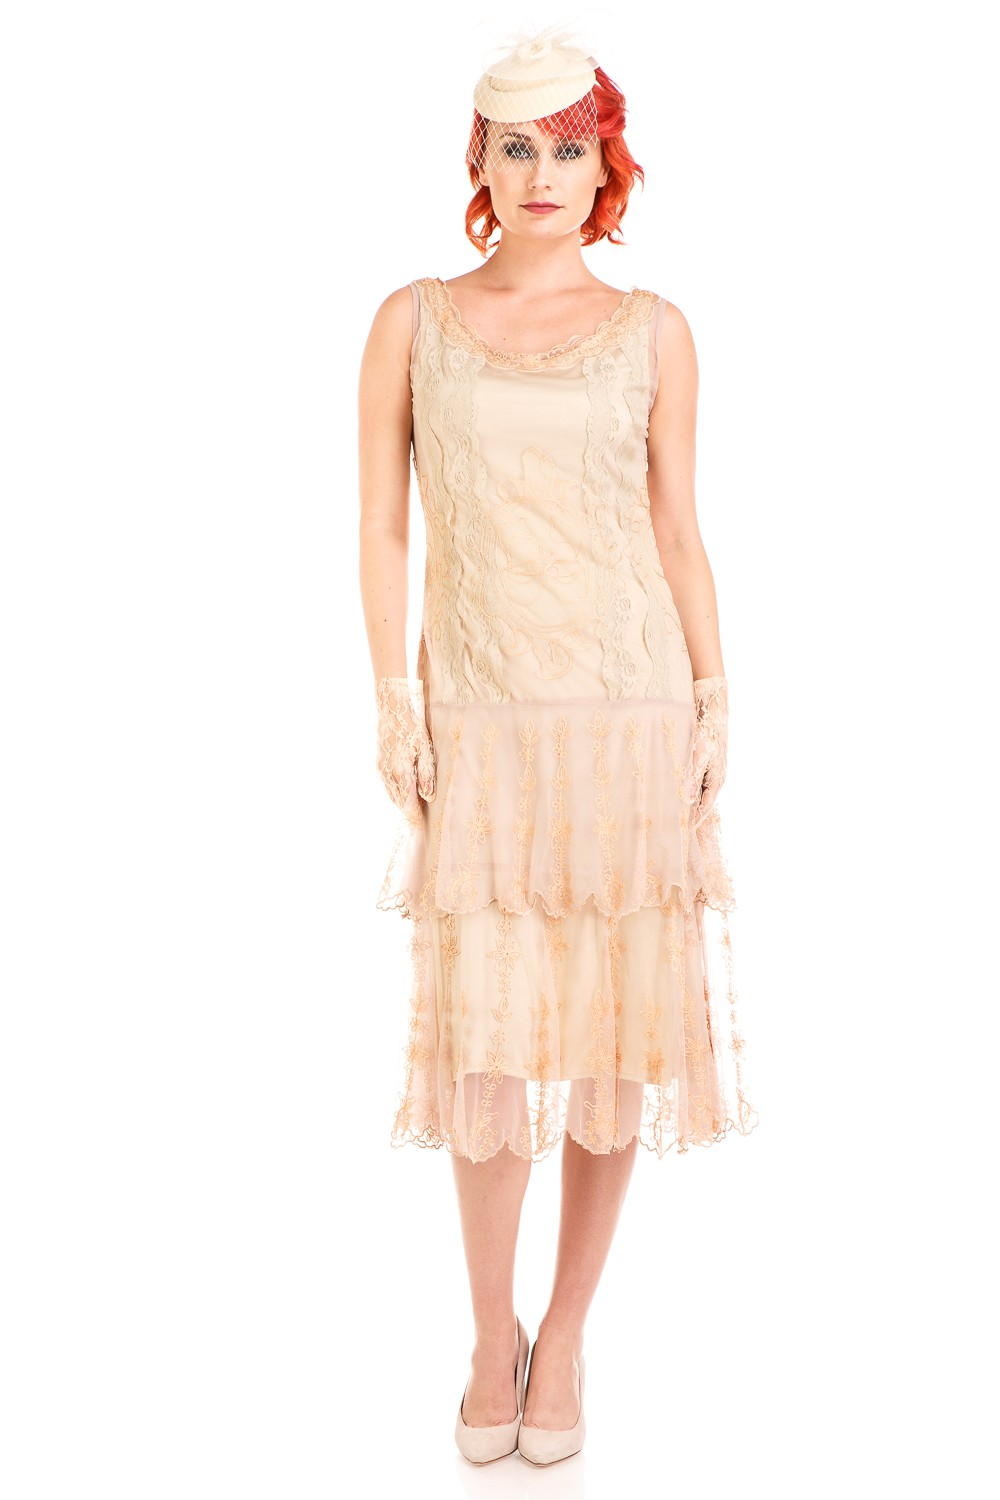 Age of Love Eva 1920s Flapper Style Dress in Vintage by Nataya